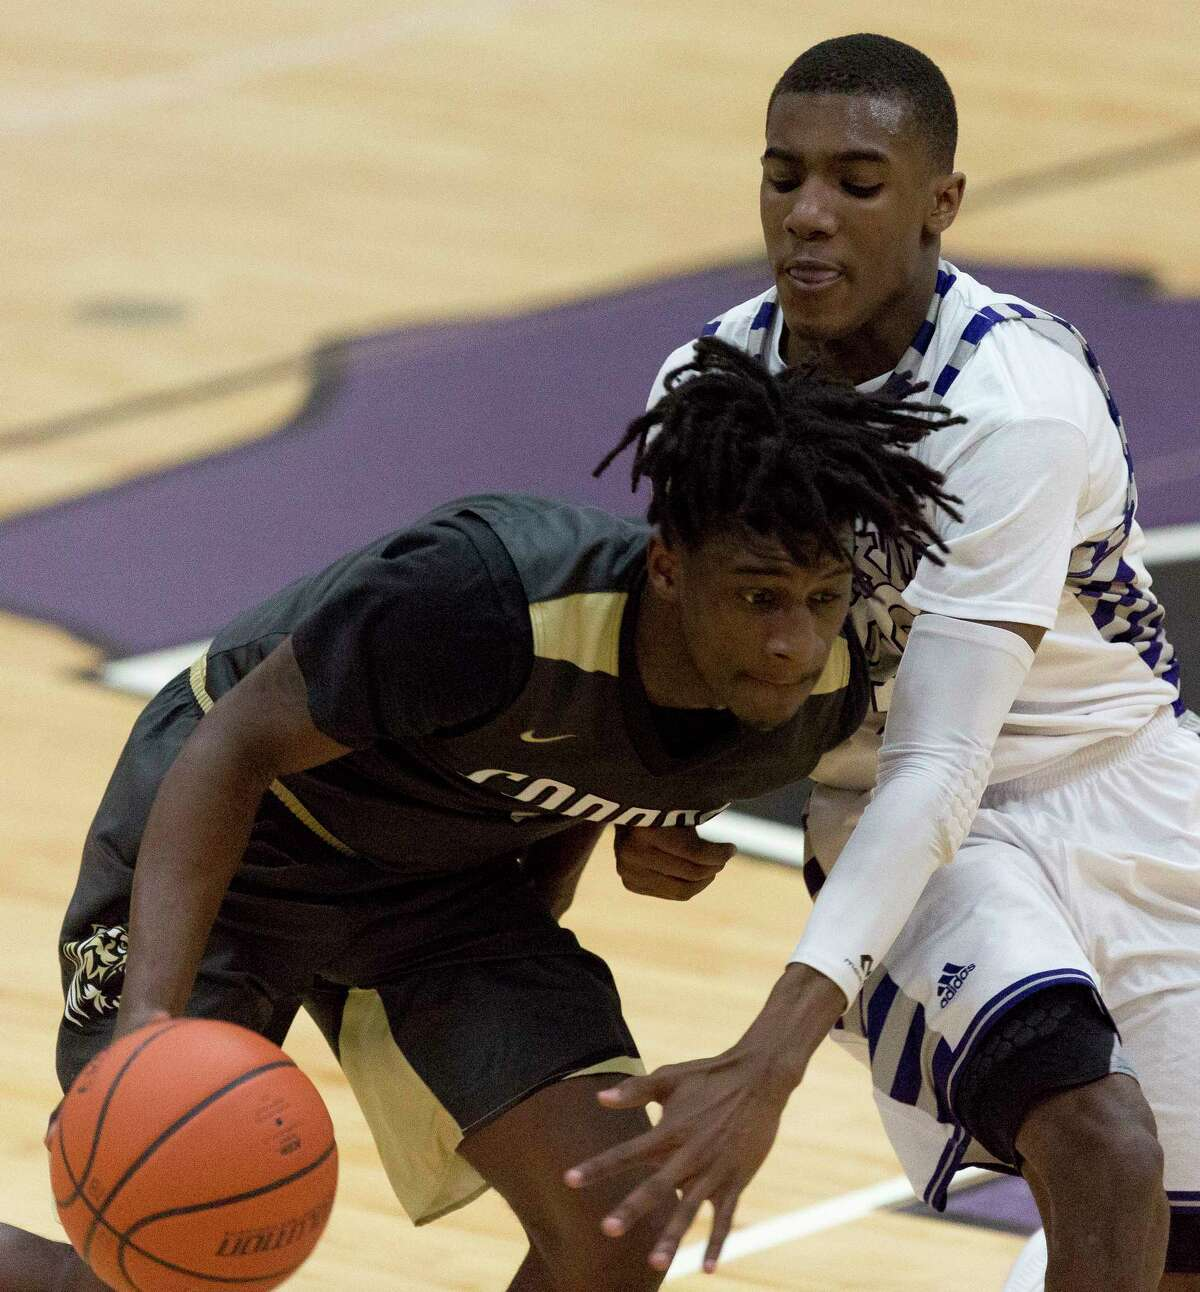 Willis guard Darius Mickens (22) goes up against Conroe guard Jay Lewis (1) during the third quarter of a non-district high school boys basketball game at Willis High School, Tuesday, Jan. 2, 2017, in Willis.